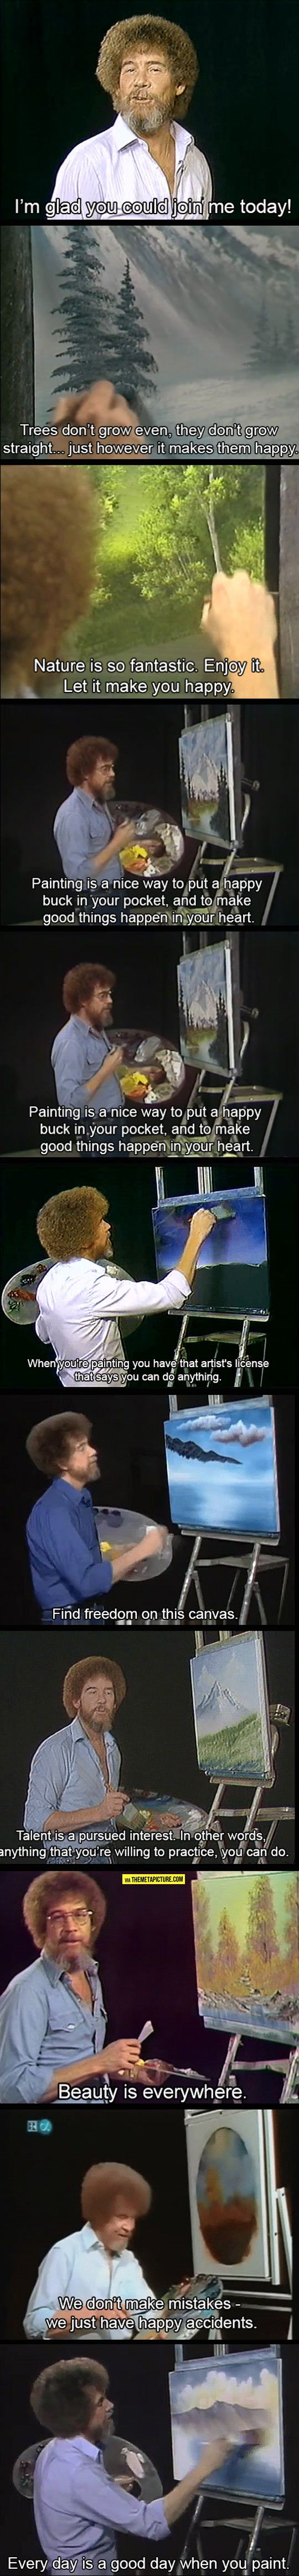 Bob Ross, Ladies And Gentlemen - I never watched his  show, since my style is very tight and has a lot of gristle. His, not so much.  But his advice is spot on for the most part.